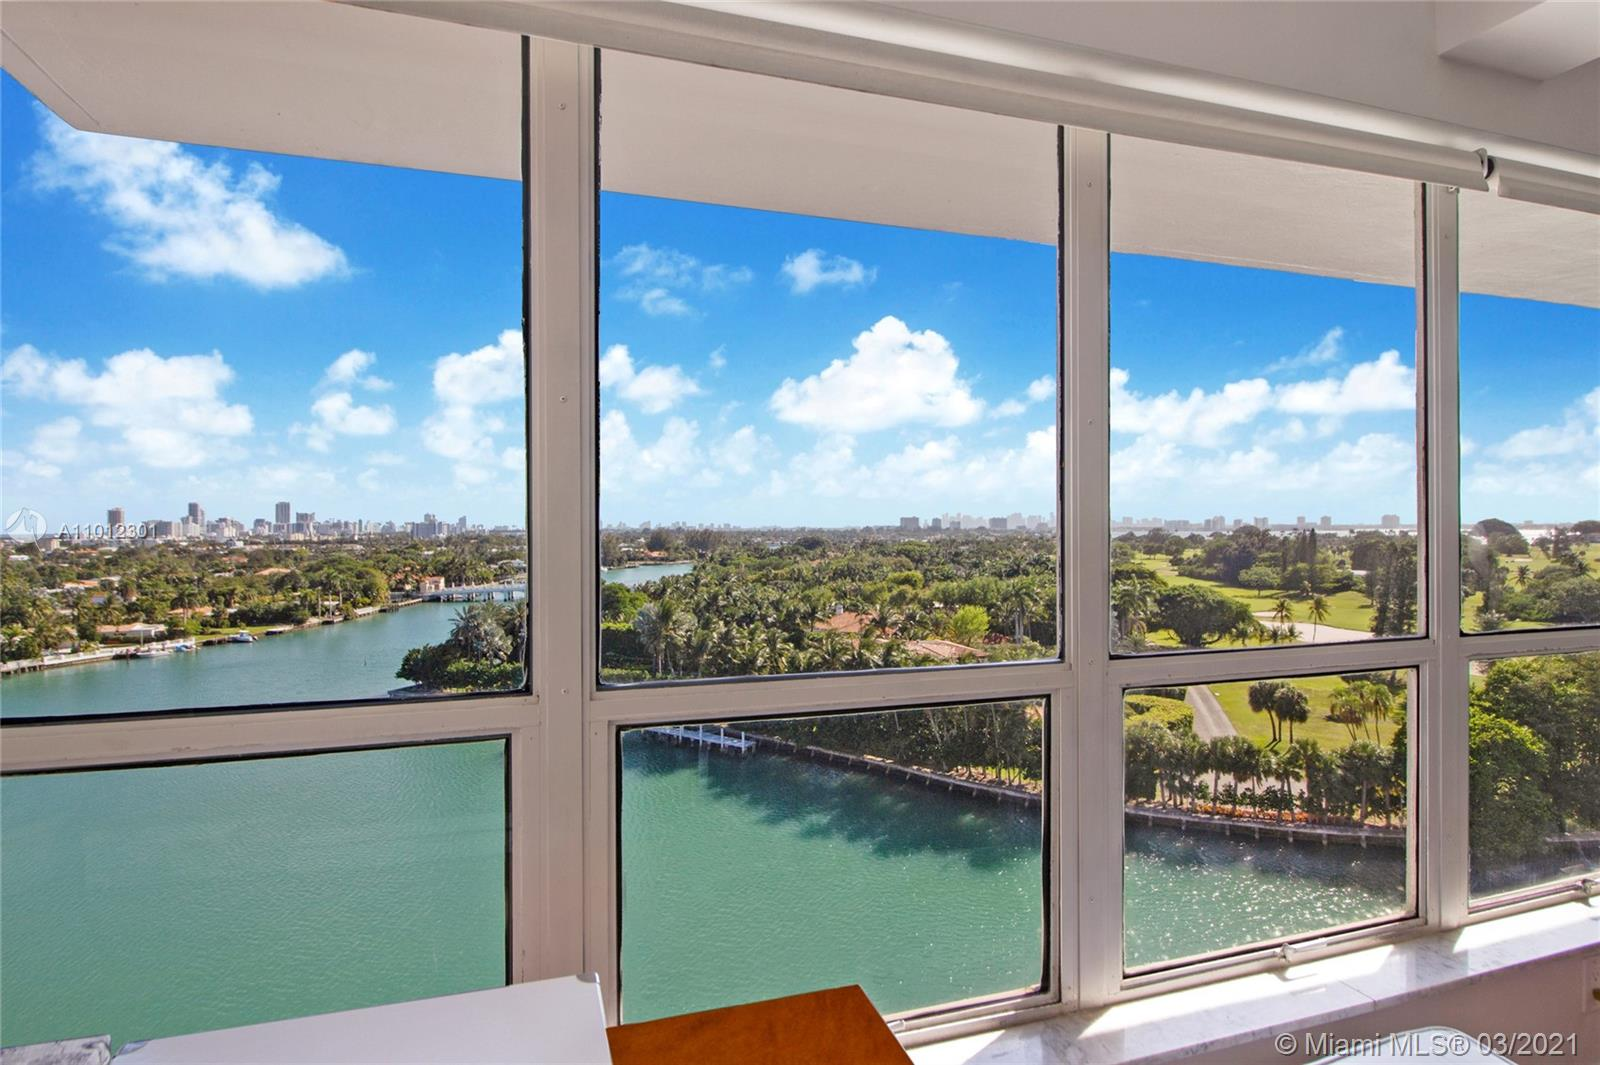 """Beautiful water views and so much more, from this ample and full of light apartment at Blair House in Bay Harbor Islands, located 5 minutes from exclusive Bal Harbour and directly across from the Intracoastal. From its large windows, you can see the amazing city skyline, enjoy the """"greens"""" of Indian Creek and its water views. The property offers an open floor plan which allows for spacious luxury living. In addition to large living and dining areas, this apartment has two spacious bedrooms, all with great views, 2 1/2 bathrooms, kitchen, laundry area and comes w/ storage unit. Blair house is walking distance from highly desired Ruth K. Broad bay harbor K-8 school district. Property can only be shown Tuesdays and Thursdays. Please use showing assist or call listing agent for showings."""